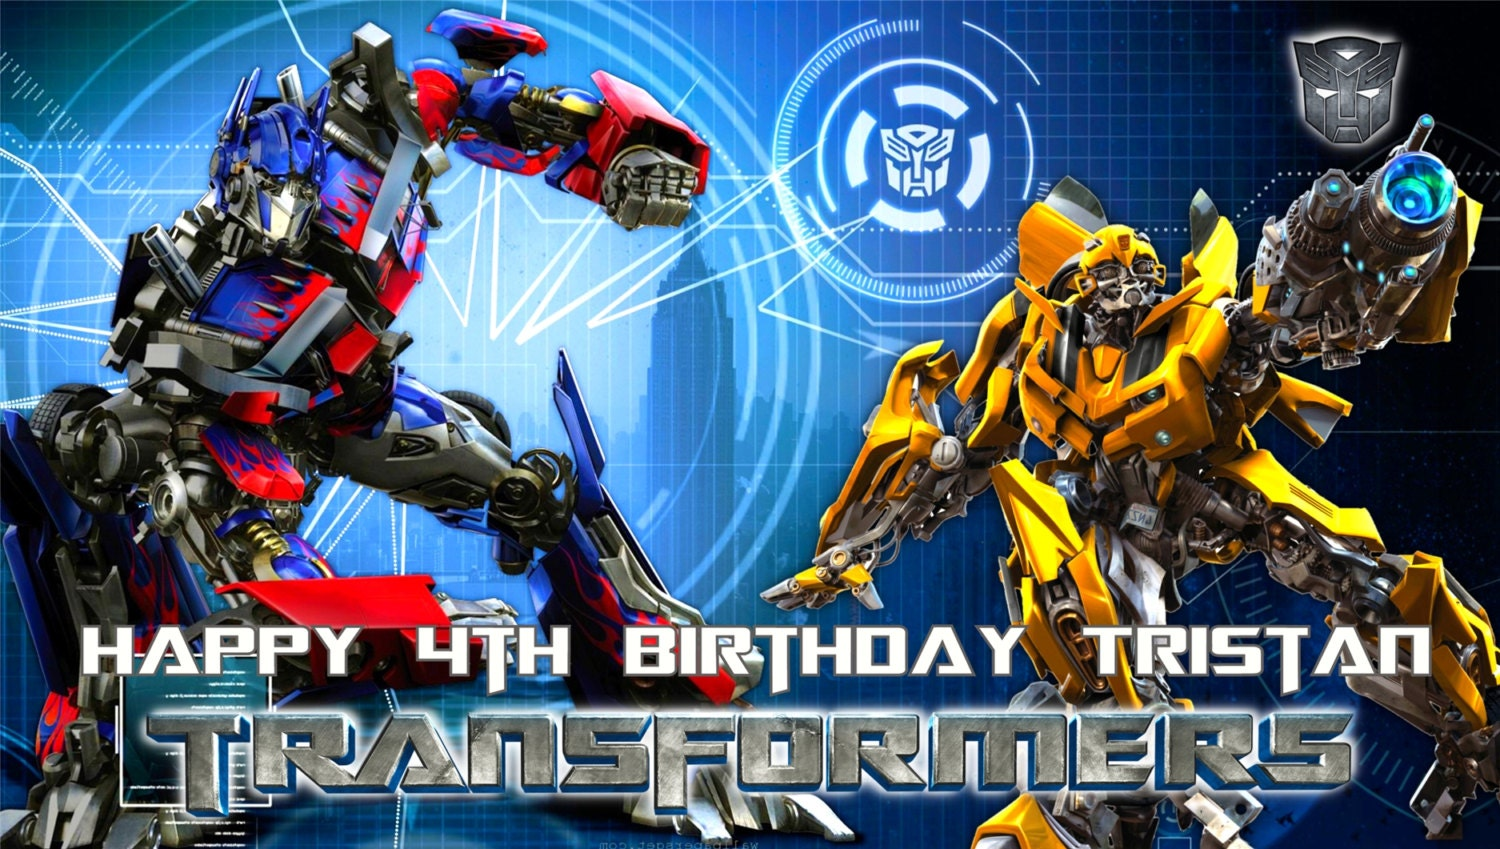 Transformers Optimus Prime And Bumble Bee Personalized Custom